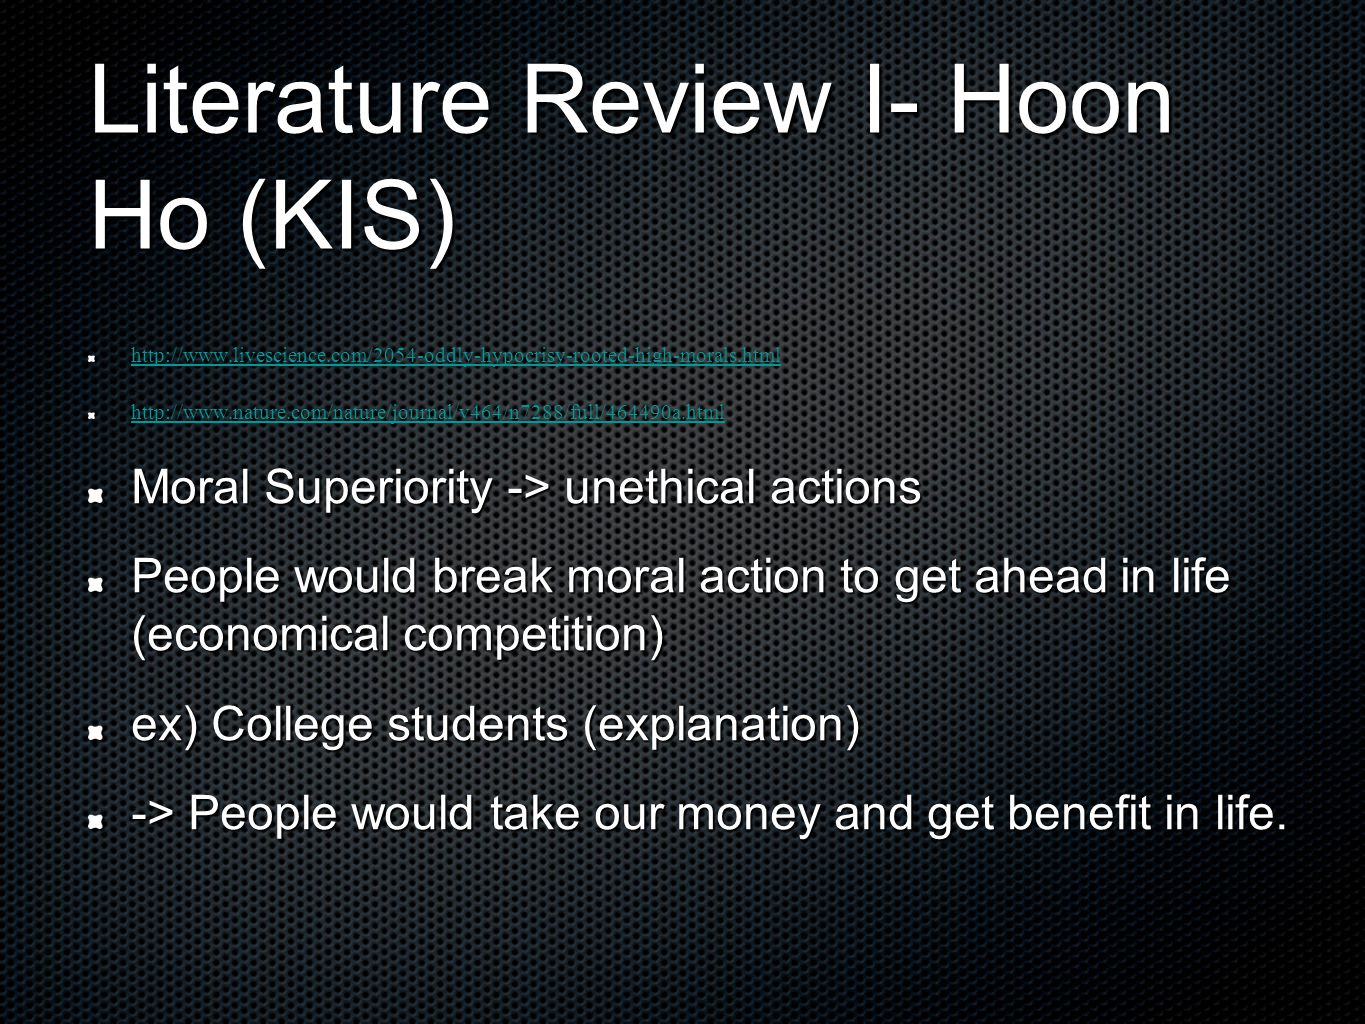 Literature Review I- Hoon Ho (KIS) http://www.livescience.com/2054-oddly-hypocrisy-rooted-high-morals.html http://www.nature.com/nature/journal/v464/n7288/full/464490a.html Moral Superiority -> unethical actions People would break moral action to get ahead in life (economical competition) ex) College students (explanation) -> People would take our money and get benefit in life.